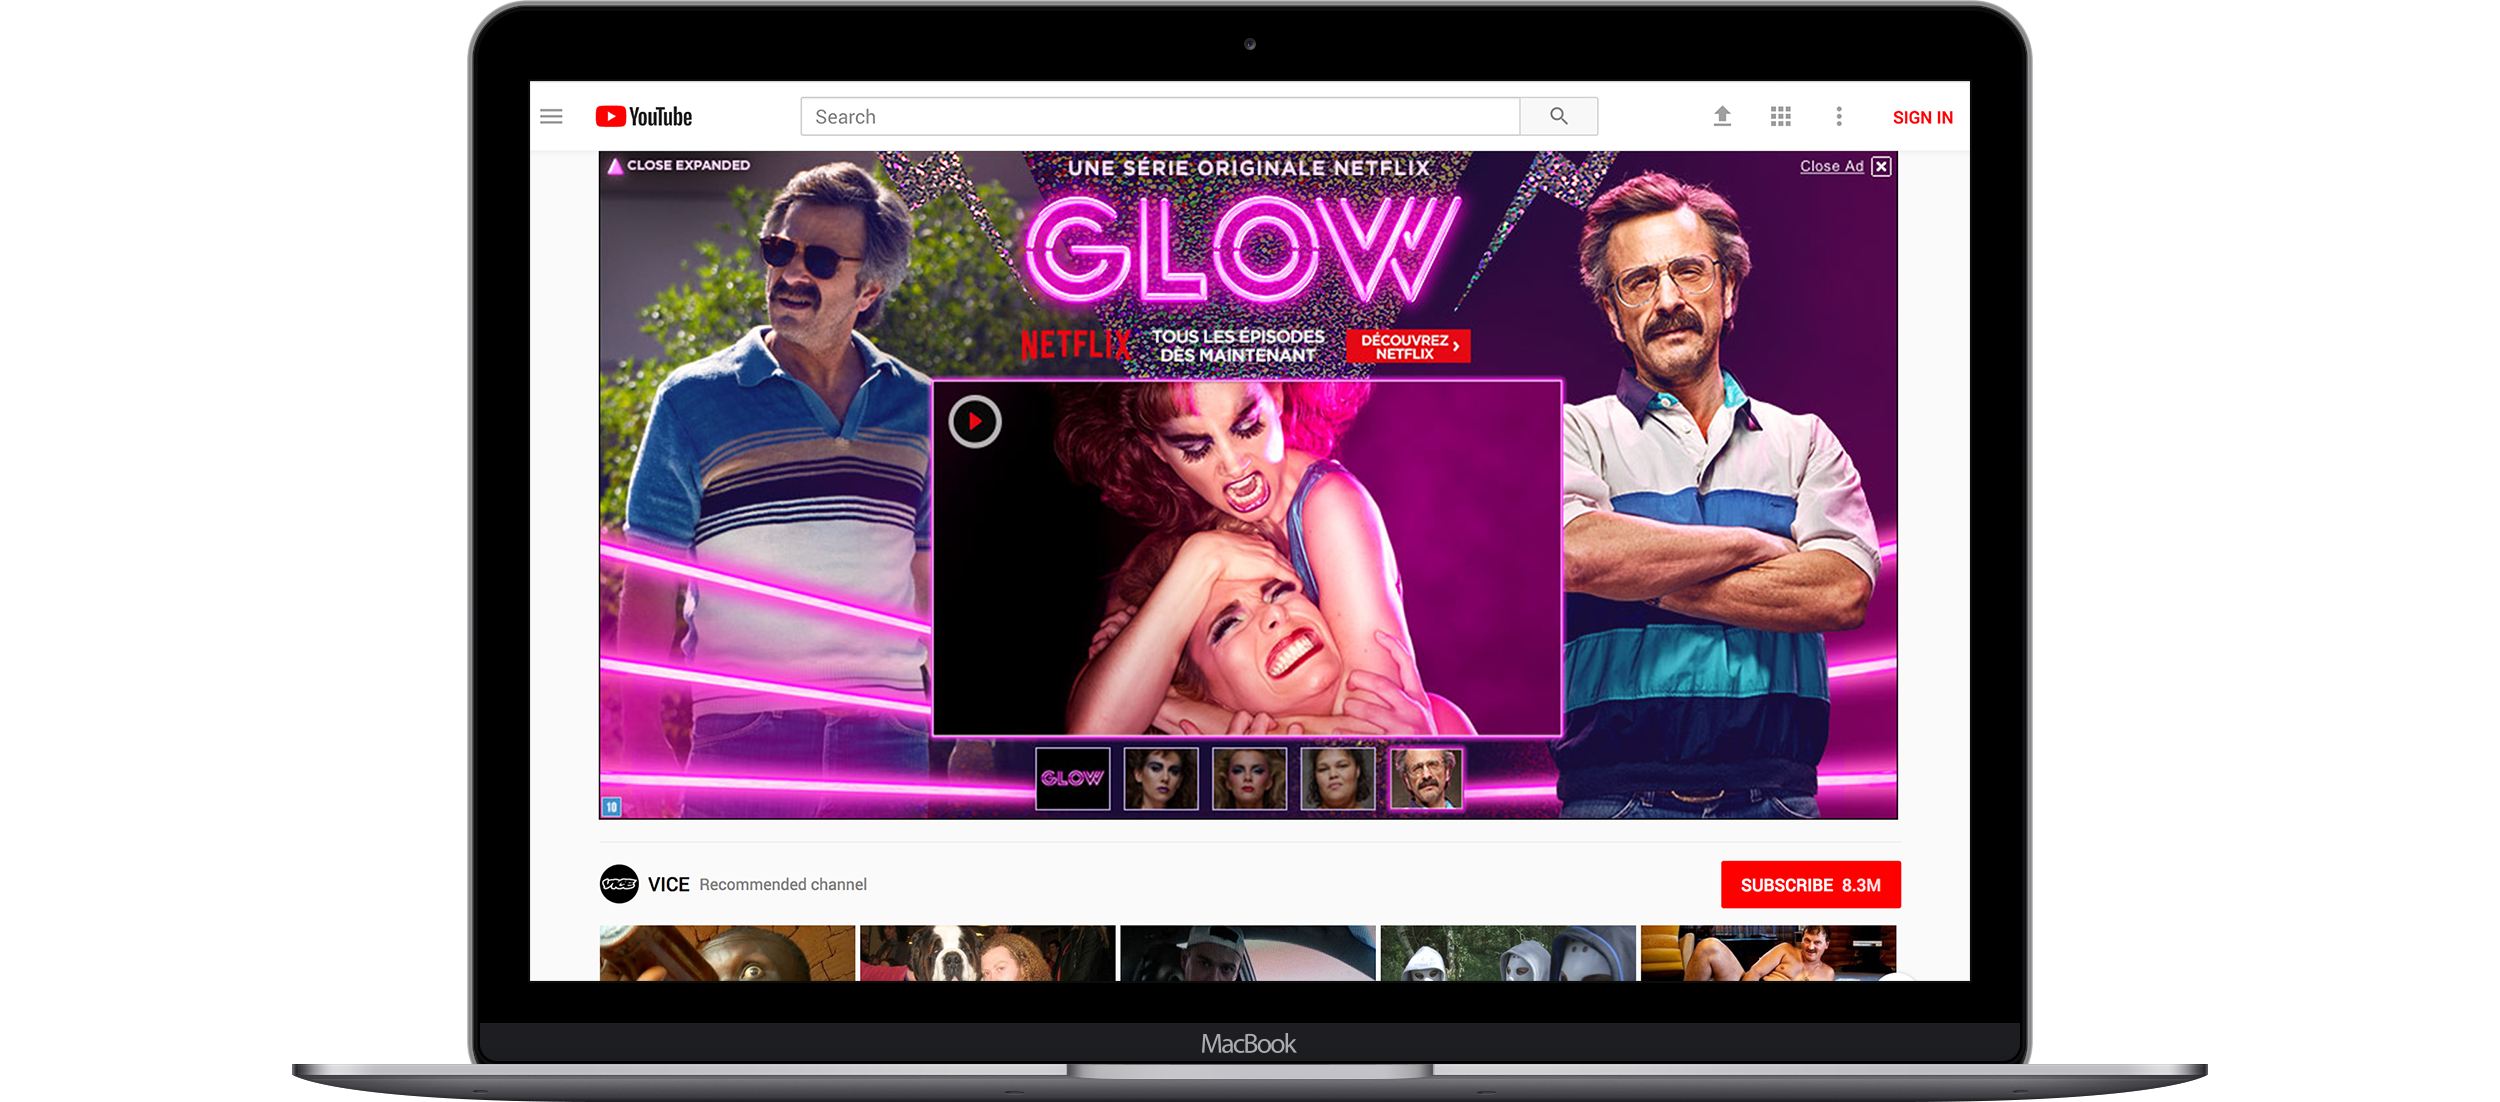 GLOW_YT_MASTHEAD_Expanded05.png